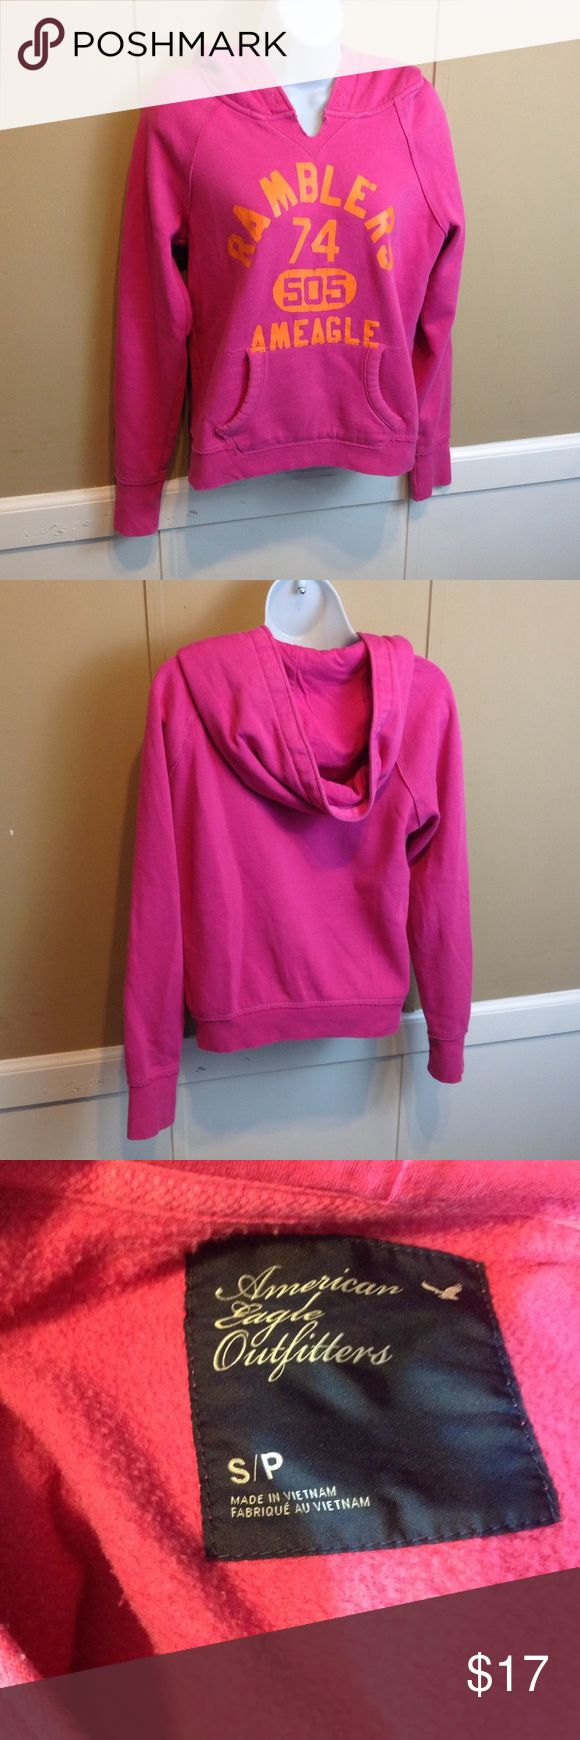 "American Eagle Hoodie Maker: American Eagle Outfitters ♥ Material: 80% Cotton 20% Polyester ♥ Color: Pink ♥ Measured Size: Pit to pit- 19"" Pit to cuff- 19"" Shoulder to waist- 21""  ♥ Tag Size:  S ♥ Actual Size: S PLEASE CHECK YOUR ACTUAL MEASUREMENTS TO MAKE SURE IT IS THE RIGHT SIZE! THANKS! ♥ Condition: Great Used Condition  ♥ Item #: (office use only) F  Follow us on Instagram and facebook for coupon codes!  INSTAGRAM-thehausofvintage1984 Facebook- intergalactic haus of vintage 1984 or…"